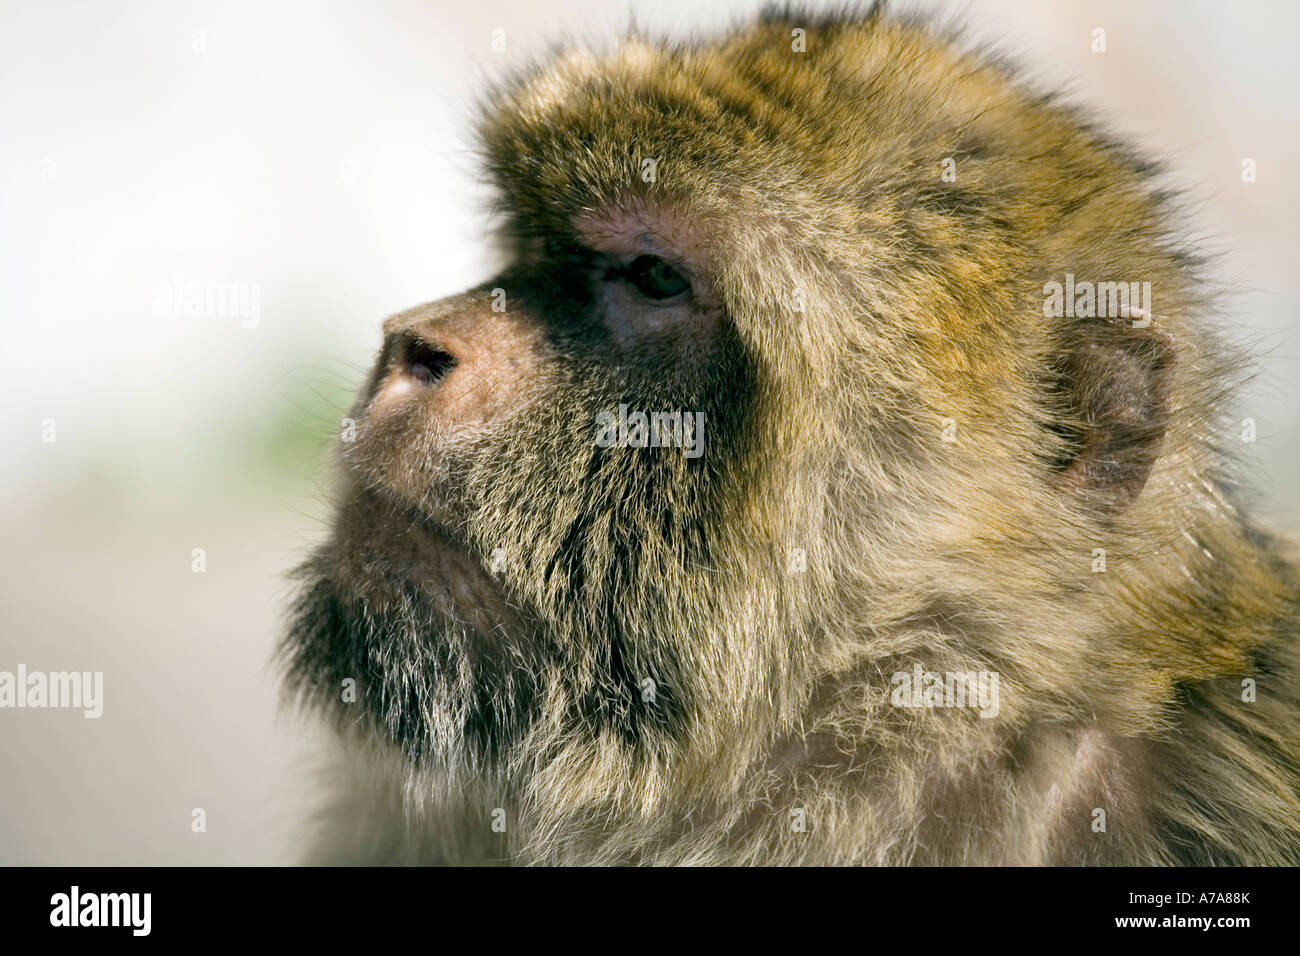 Portrait of Adult Gibraltar Ape - Stock Image